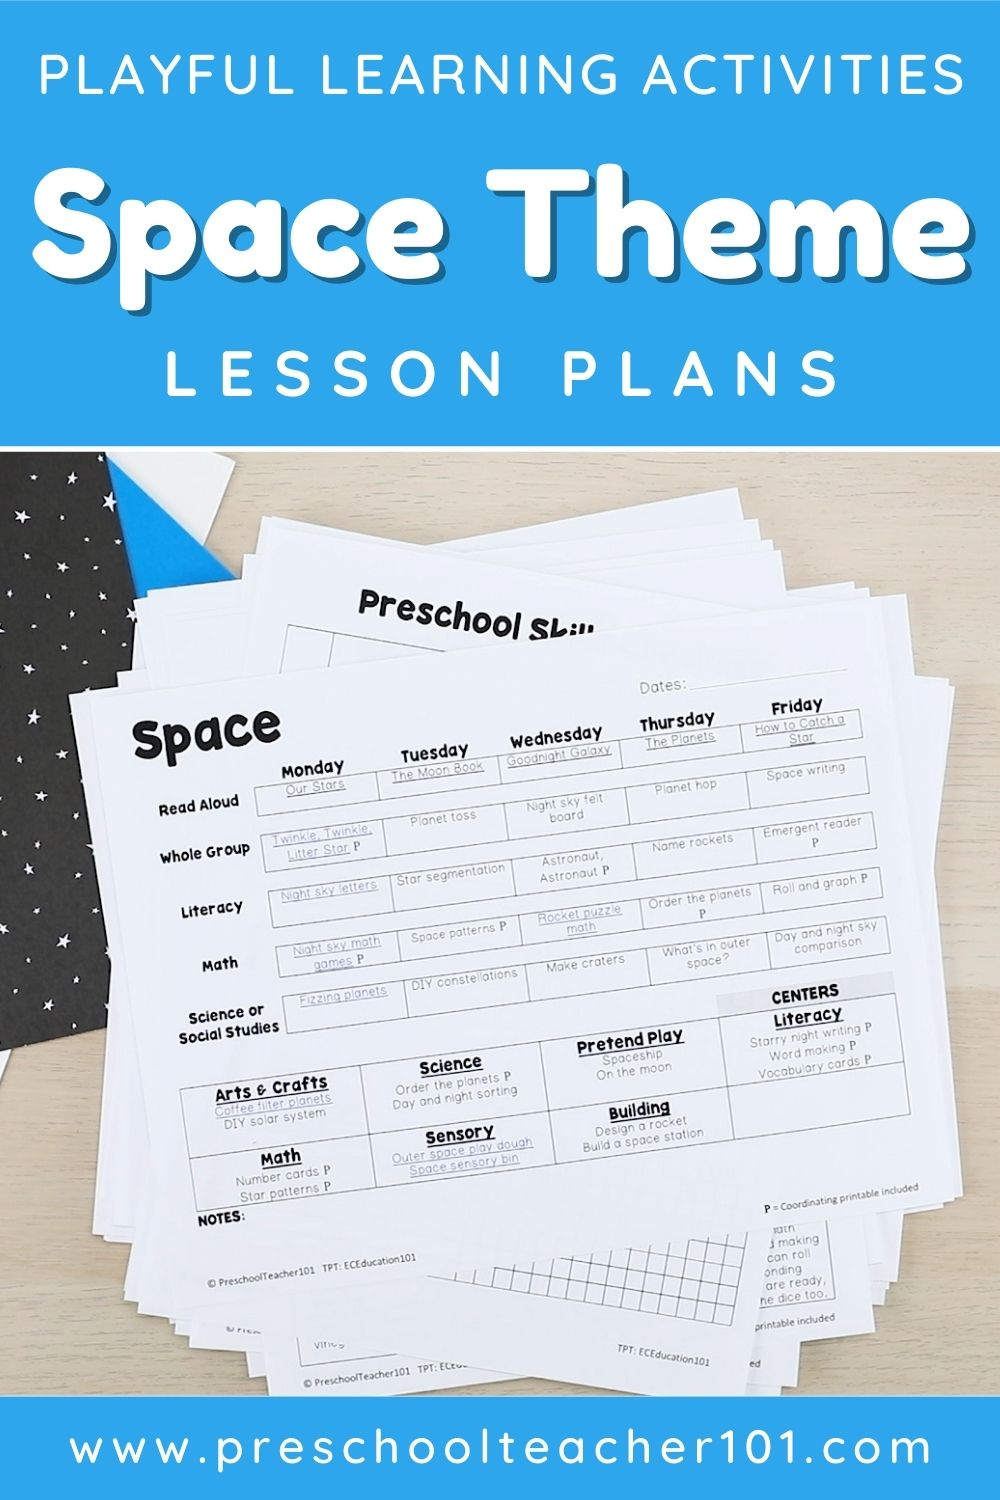 Playful Learning Activities - Space Theme